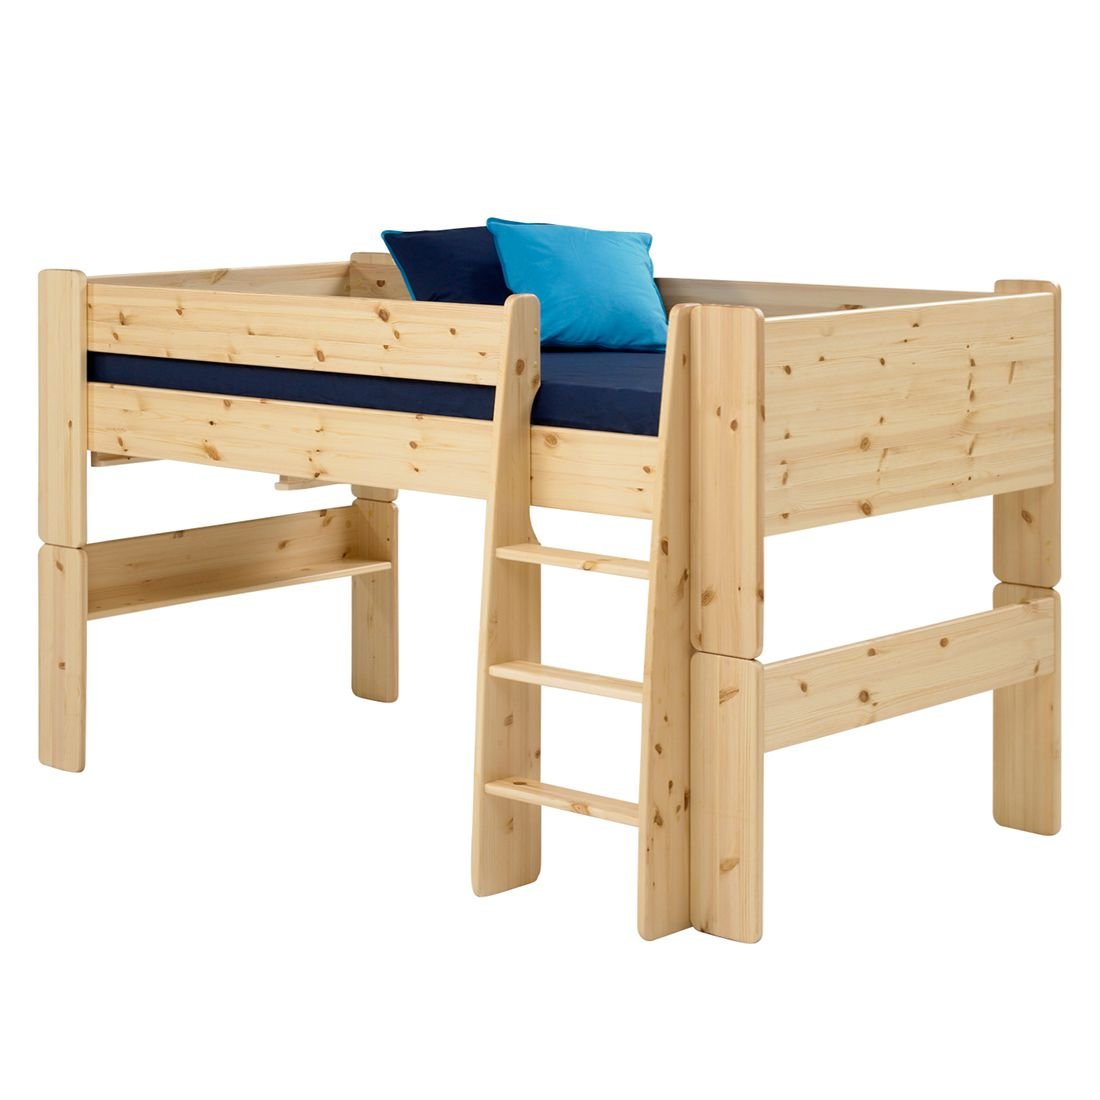 Speelbed Steens for Kids, Steens